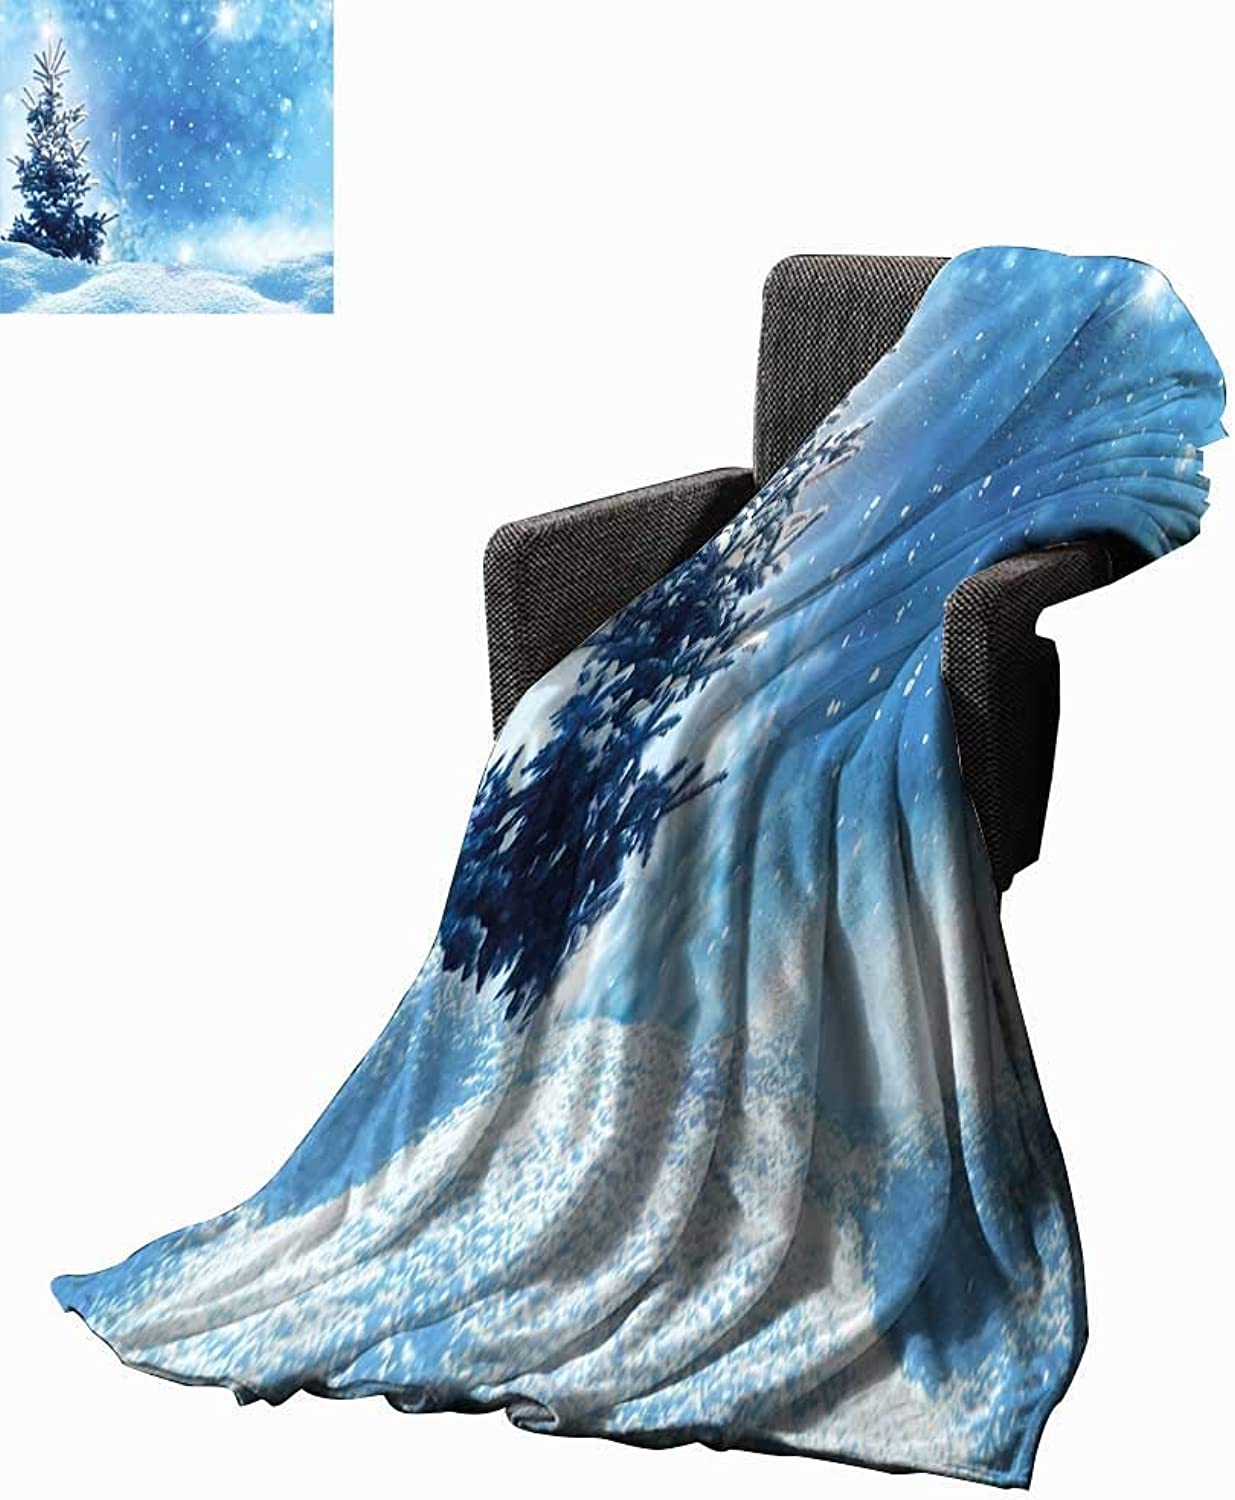 Winter Digital Printing Blanket Artistic Rendition of Snowy Season of Year Frozen Pine Tree Snowflakes Falling Down 60 x50 ,Super Soft and Comfortable,Suitable for Sofas,Chairs,beds